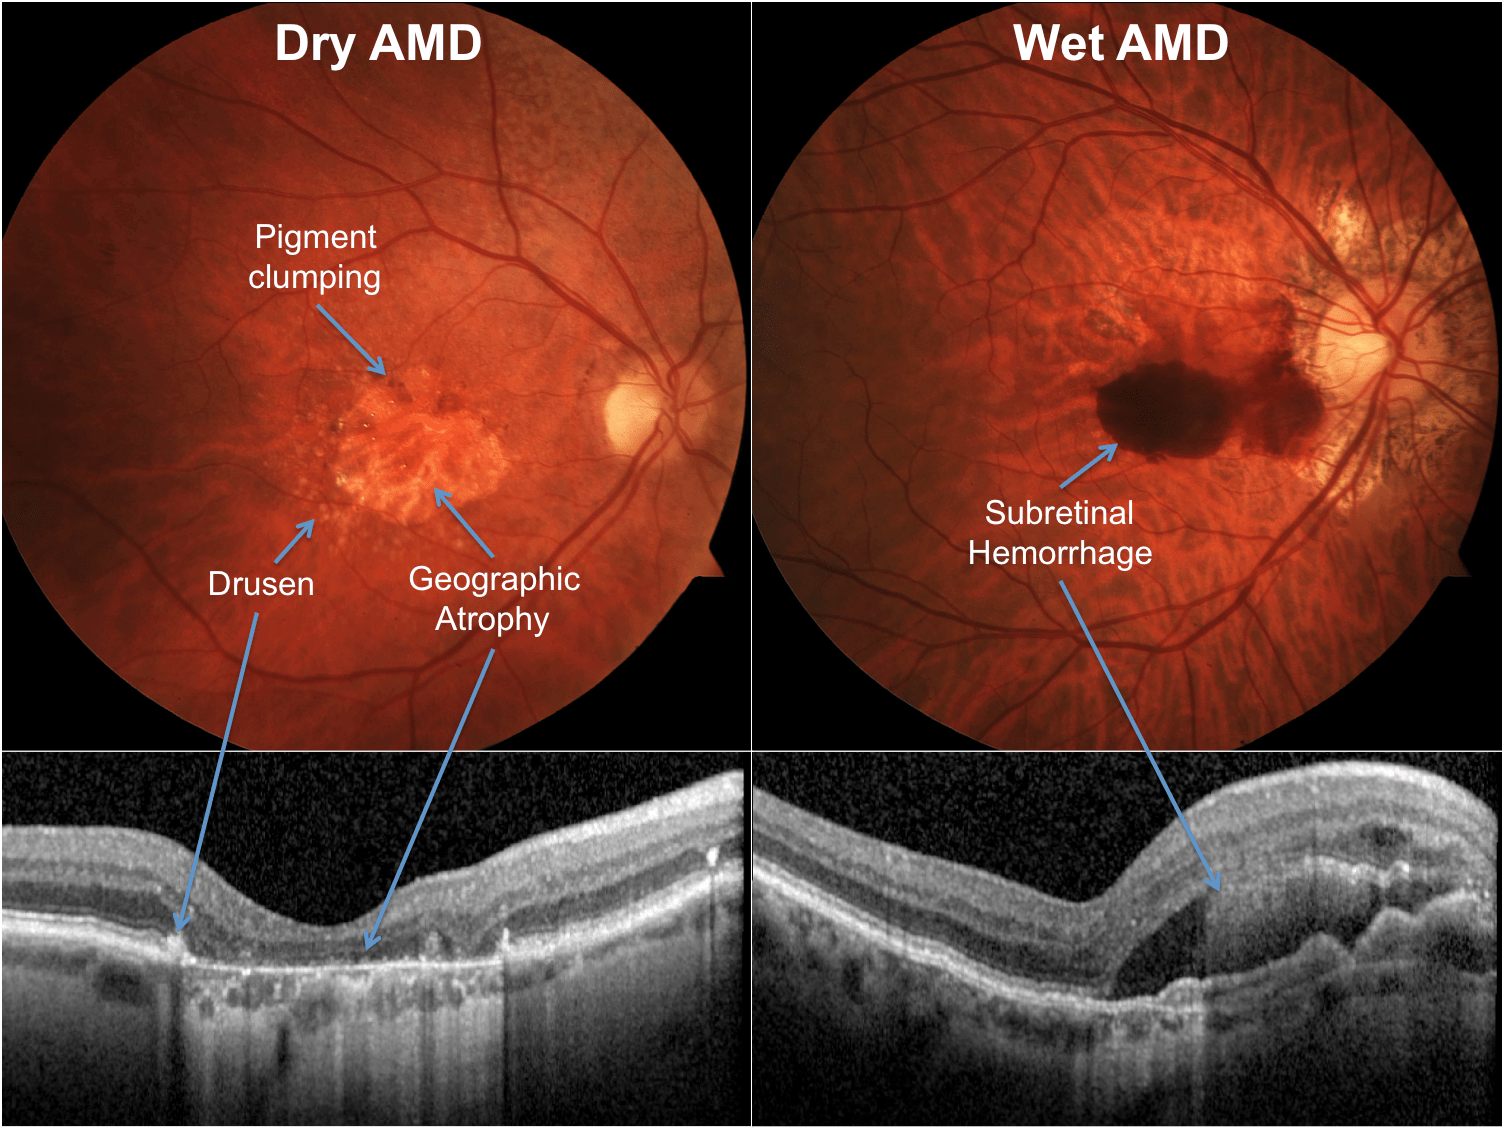 Amd Or Age Related Macular Degeneration Researchers Identify Vitronectin As New Drug Target For Dry Age Related Macular Degeneration Thailand Medical News